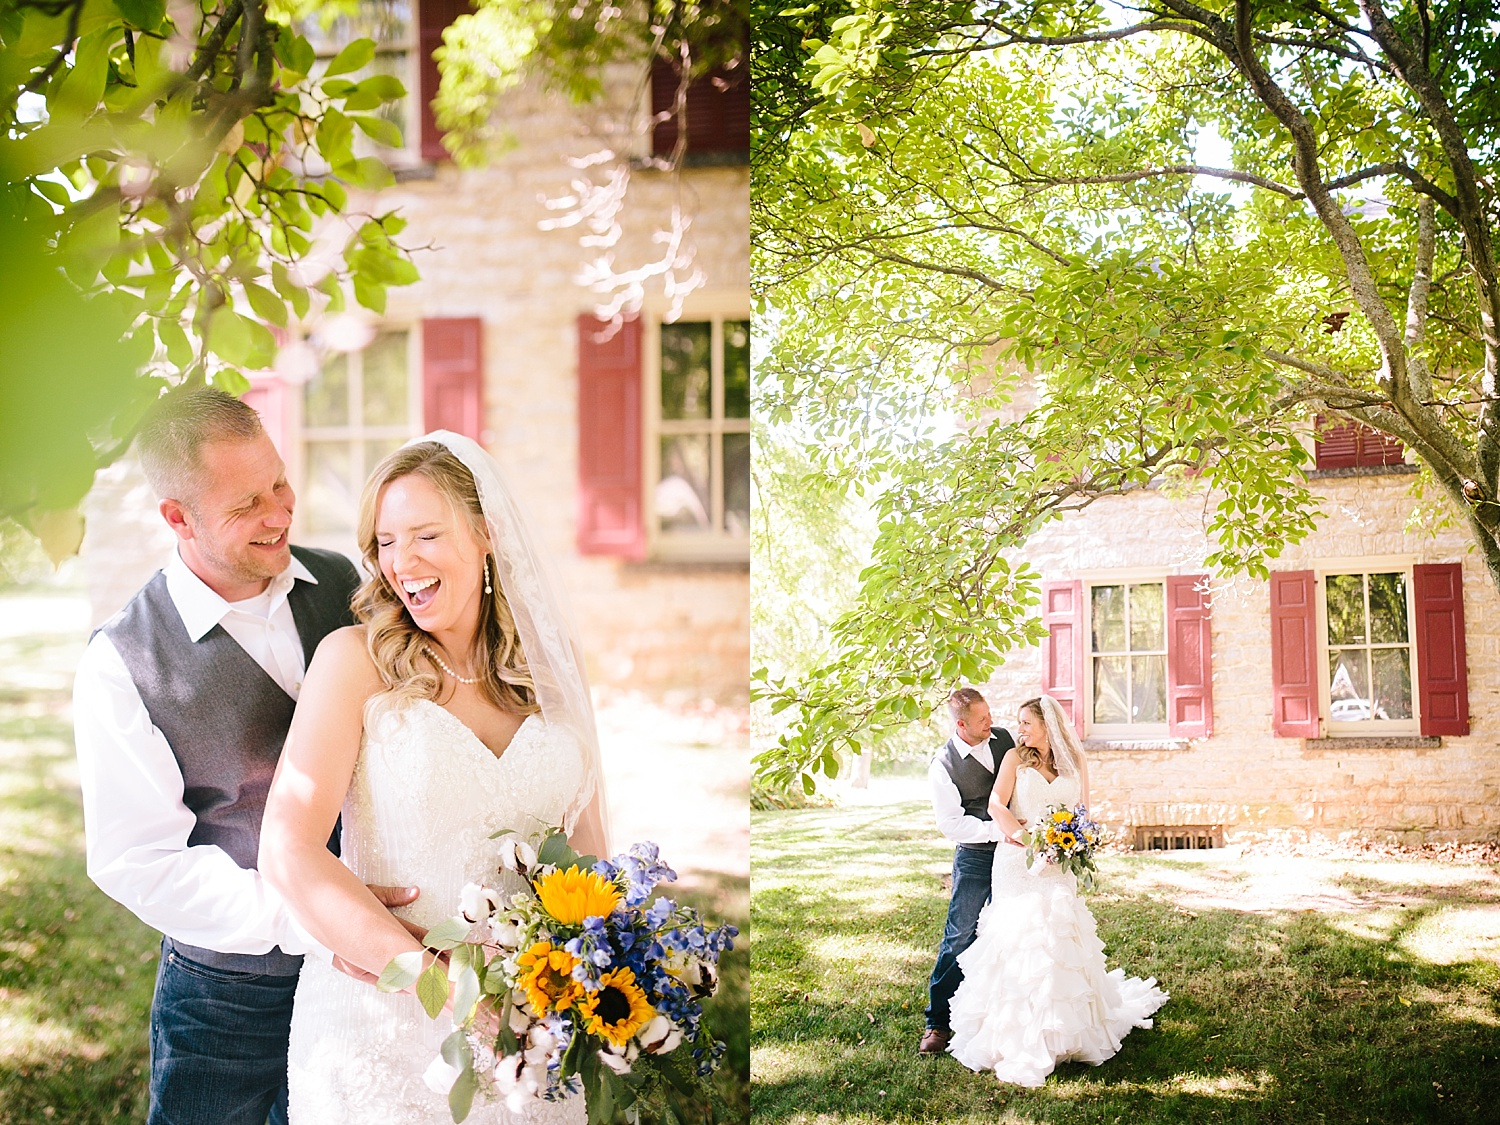 jennyryan_newbeginnings_farmstead_upstatenewyork_wedding_image059.jpg